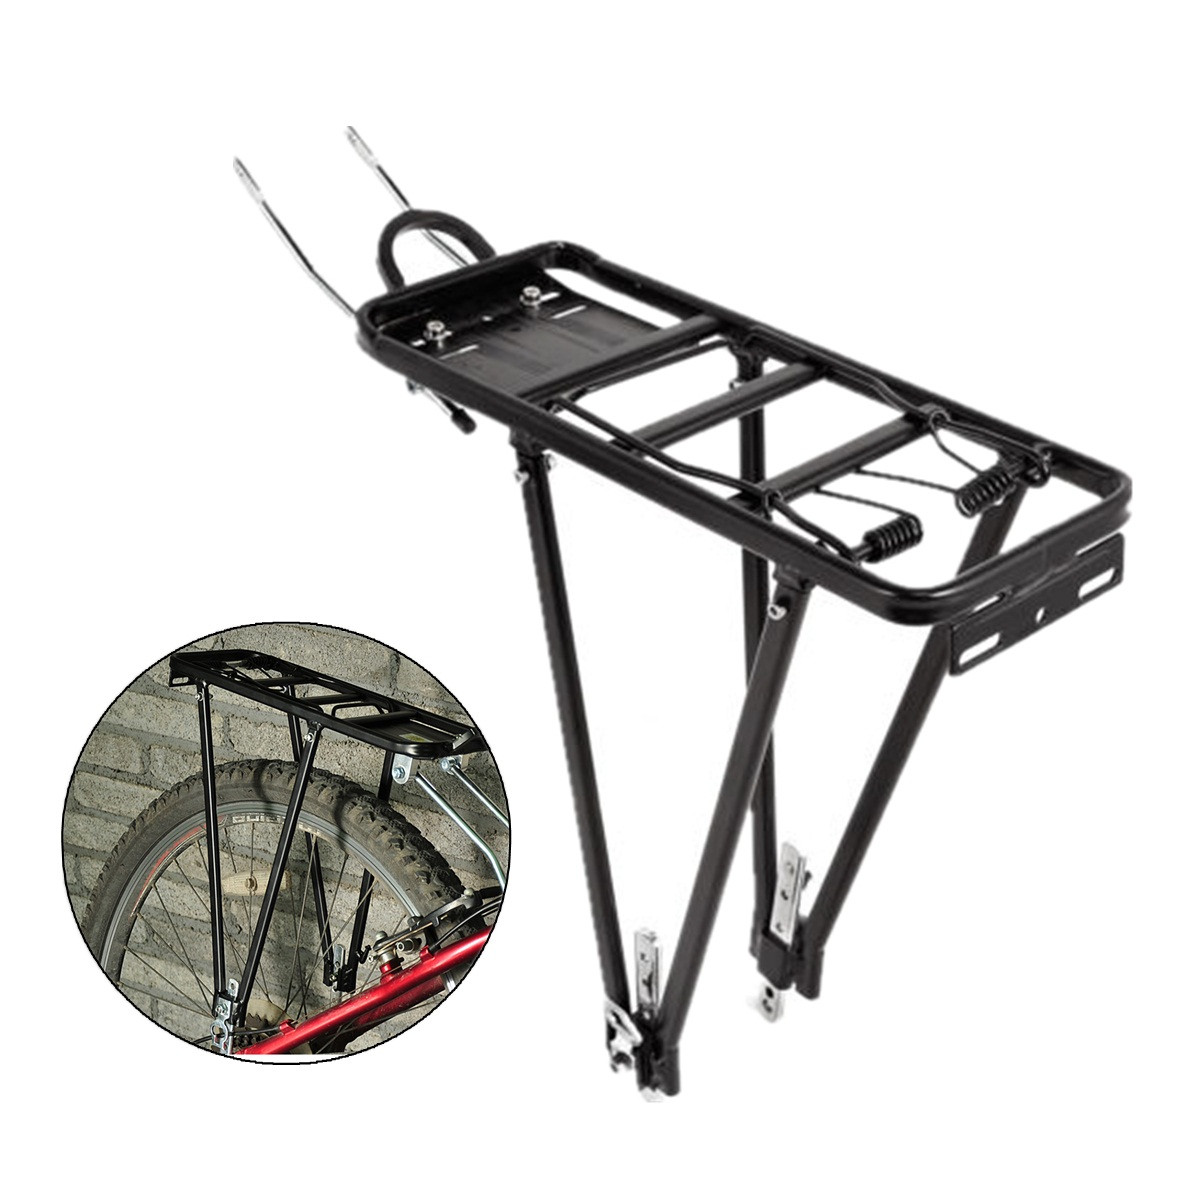 bicycle rear rack bike cargo luggage carrier rack heavy duty bicycle back holder fits size 24 28 wheels 143lbs load capacity walmart com